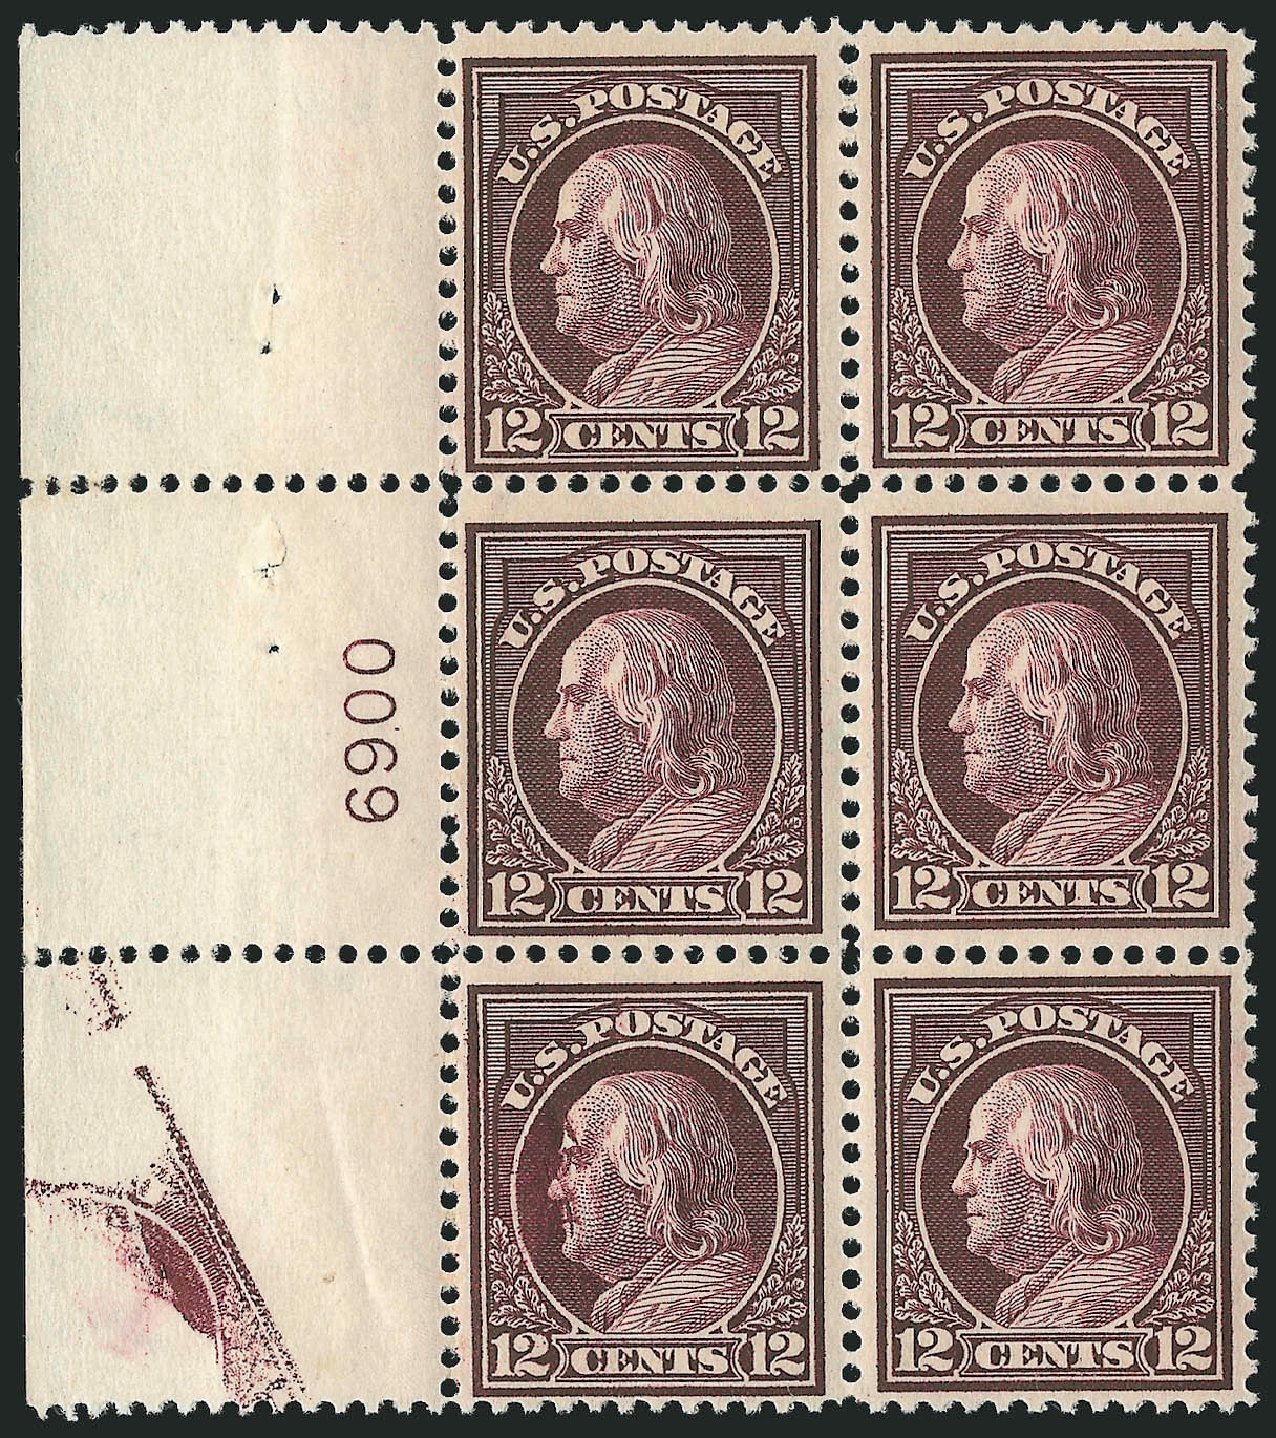 US Stamps Prices Scott Catalogue 417 - 1914 12c Franklin Perf 12. Robert Siegel Auction Galleries, Apr 2015, Sale 1096, Lot 664